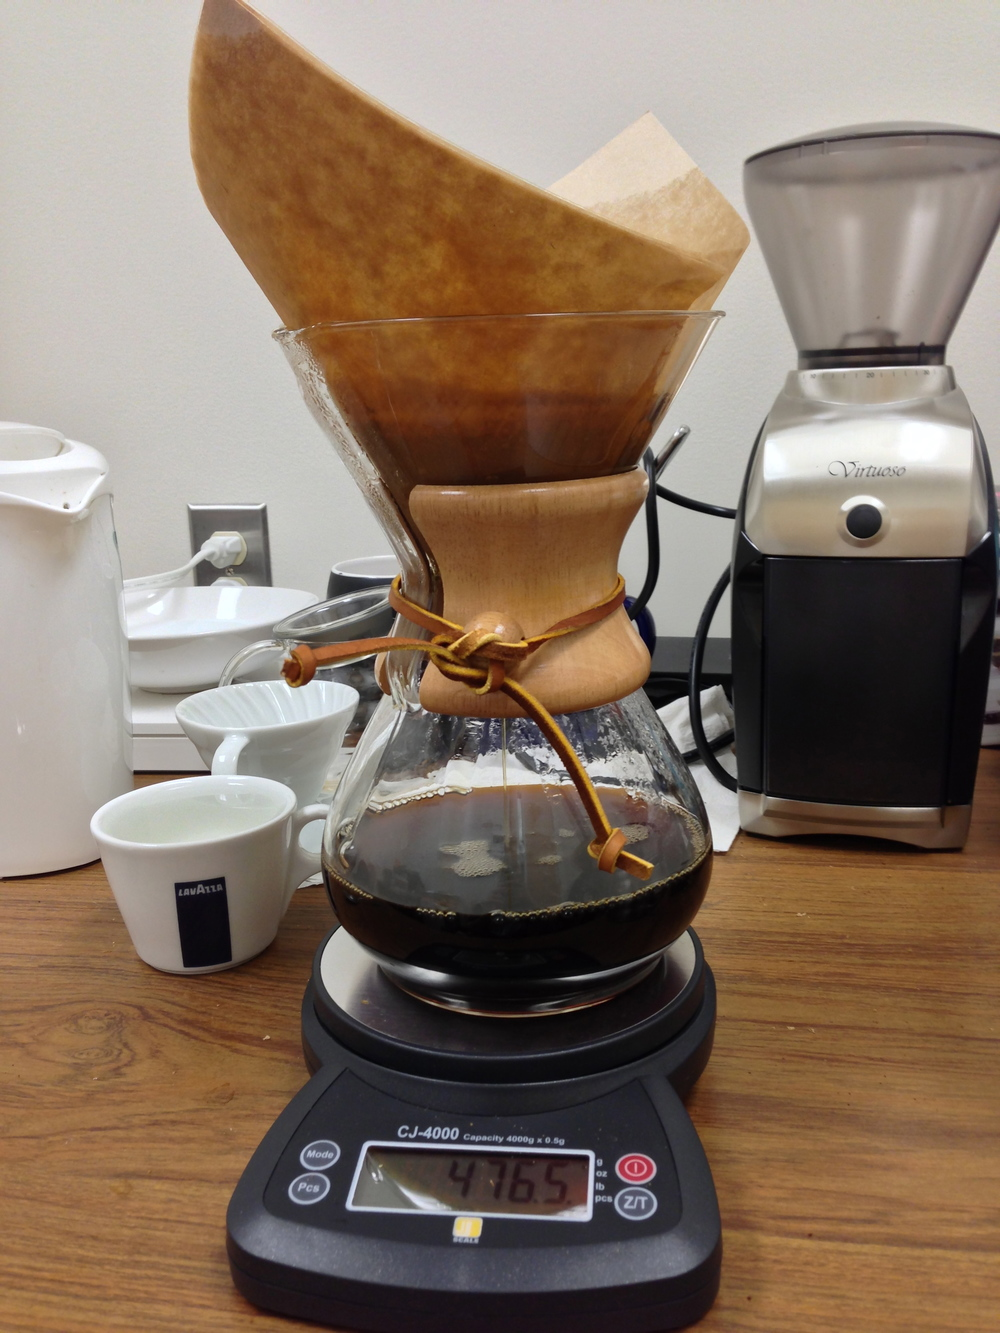 Chemex, Hario V-60, CJ-4000 scale, and Virtuoso burr grinder